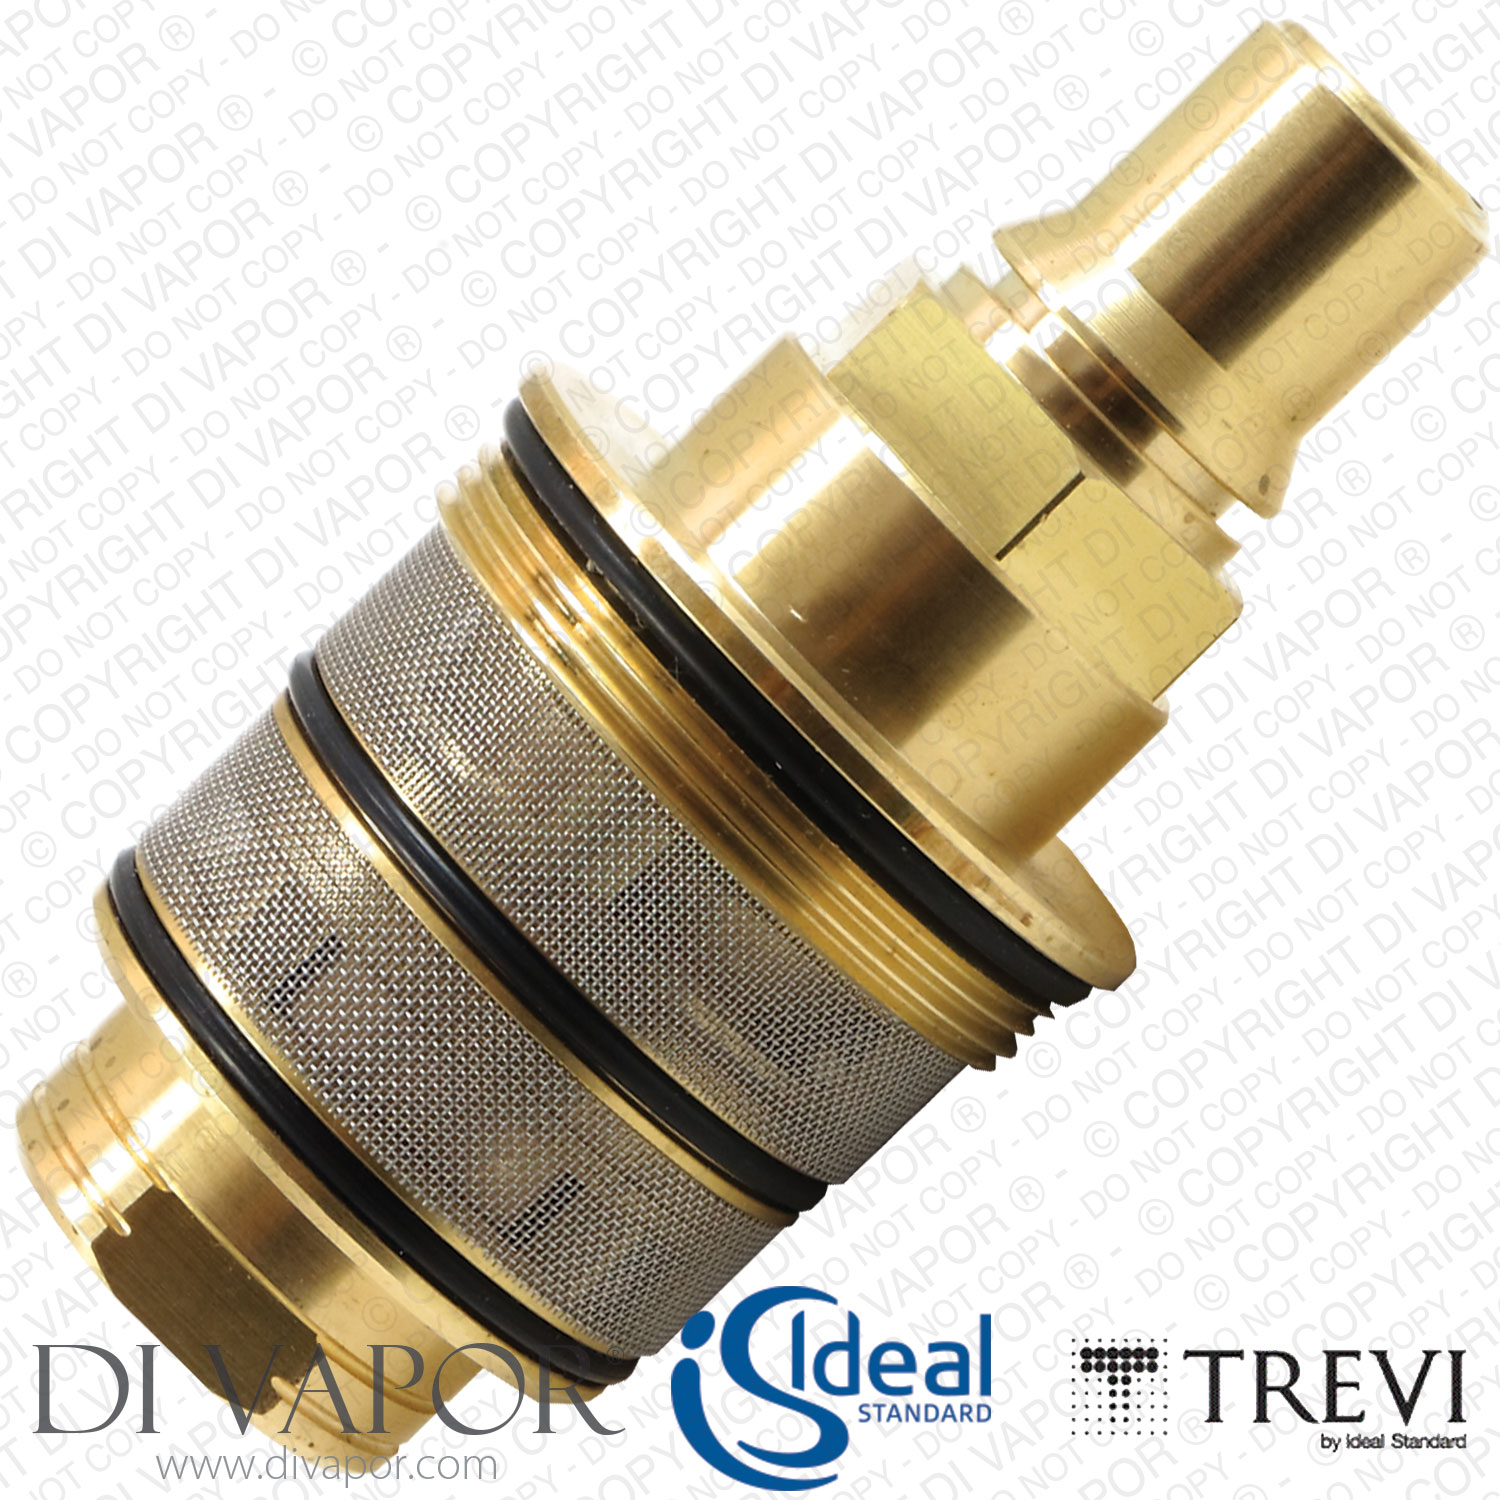 A963564nu Thermostatic Cartridge Trevi Ideal Standard